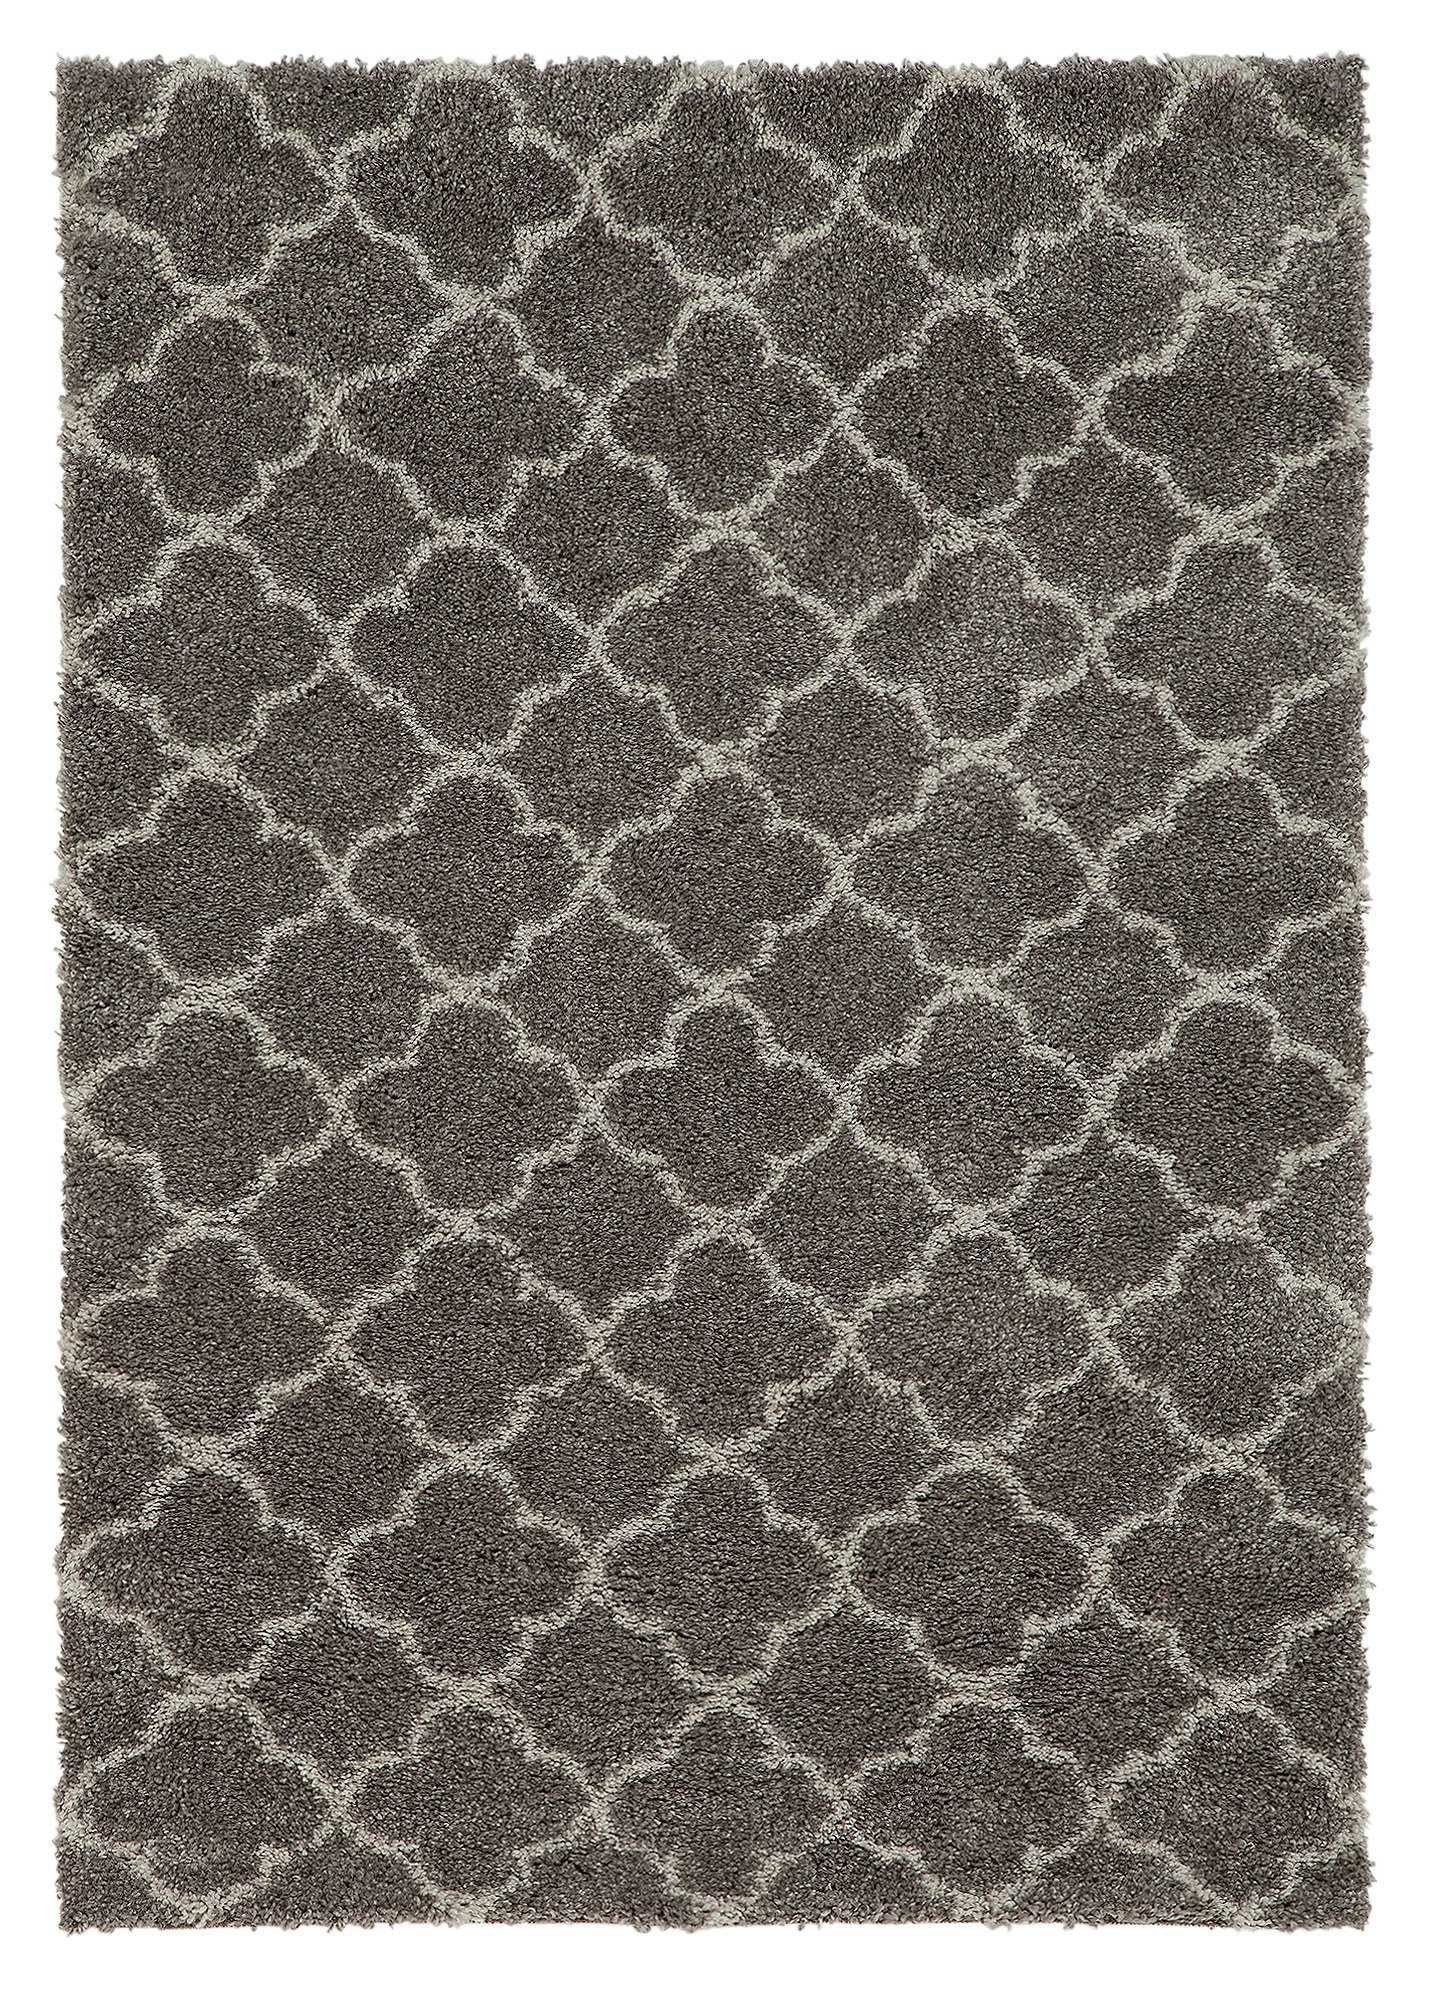 5314777_R_Z001A large patio rugs